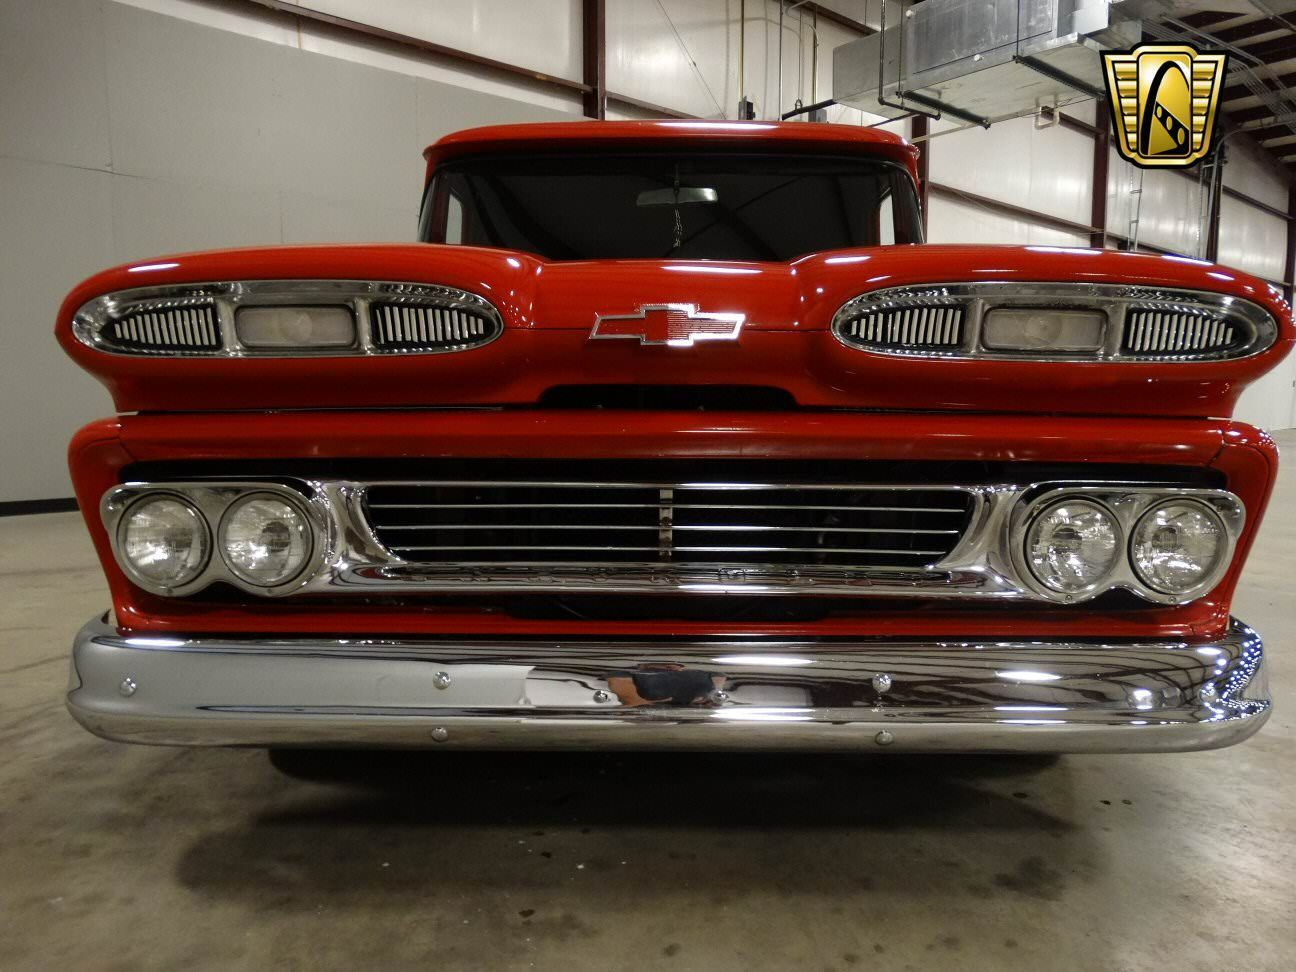 For sale in our louisville kentucky showroom is a red 1960 chevrolet apache panel truck 454 cid turbo 400